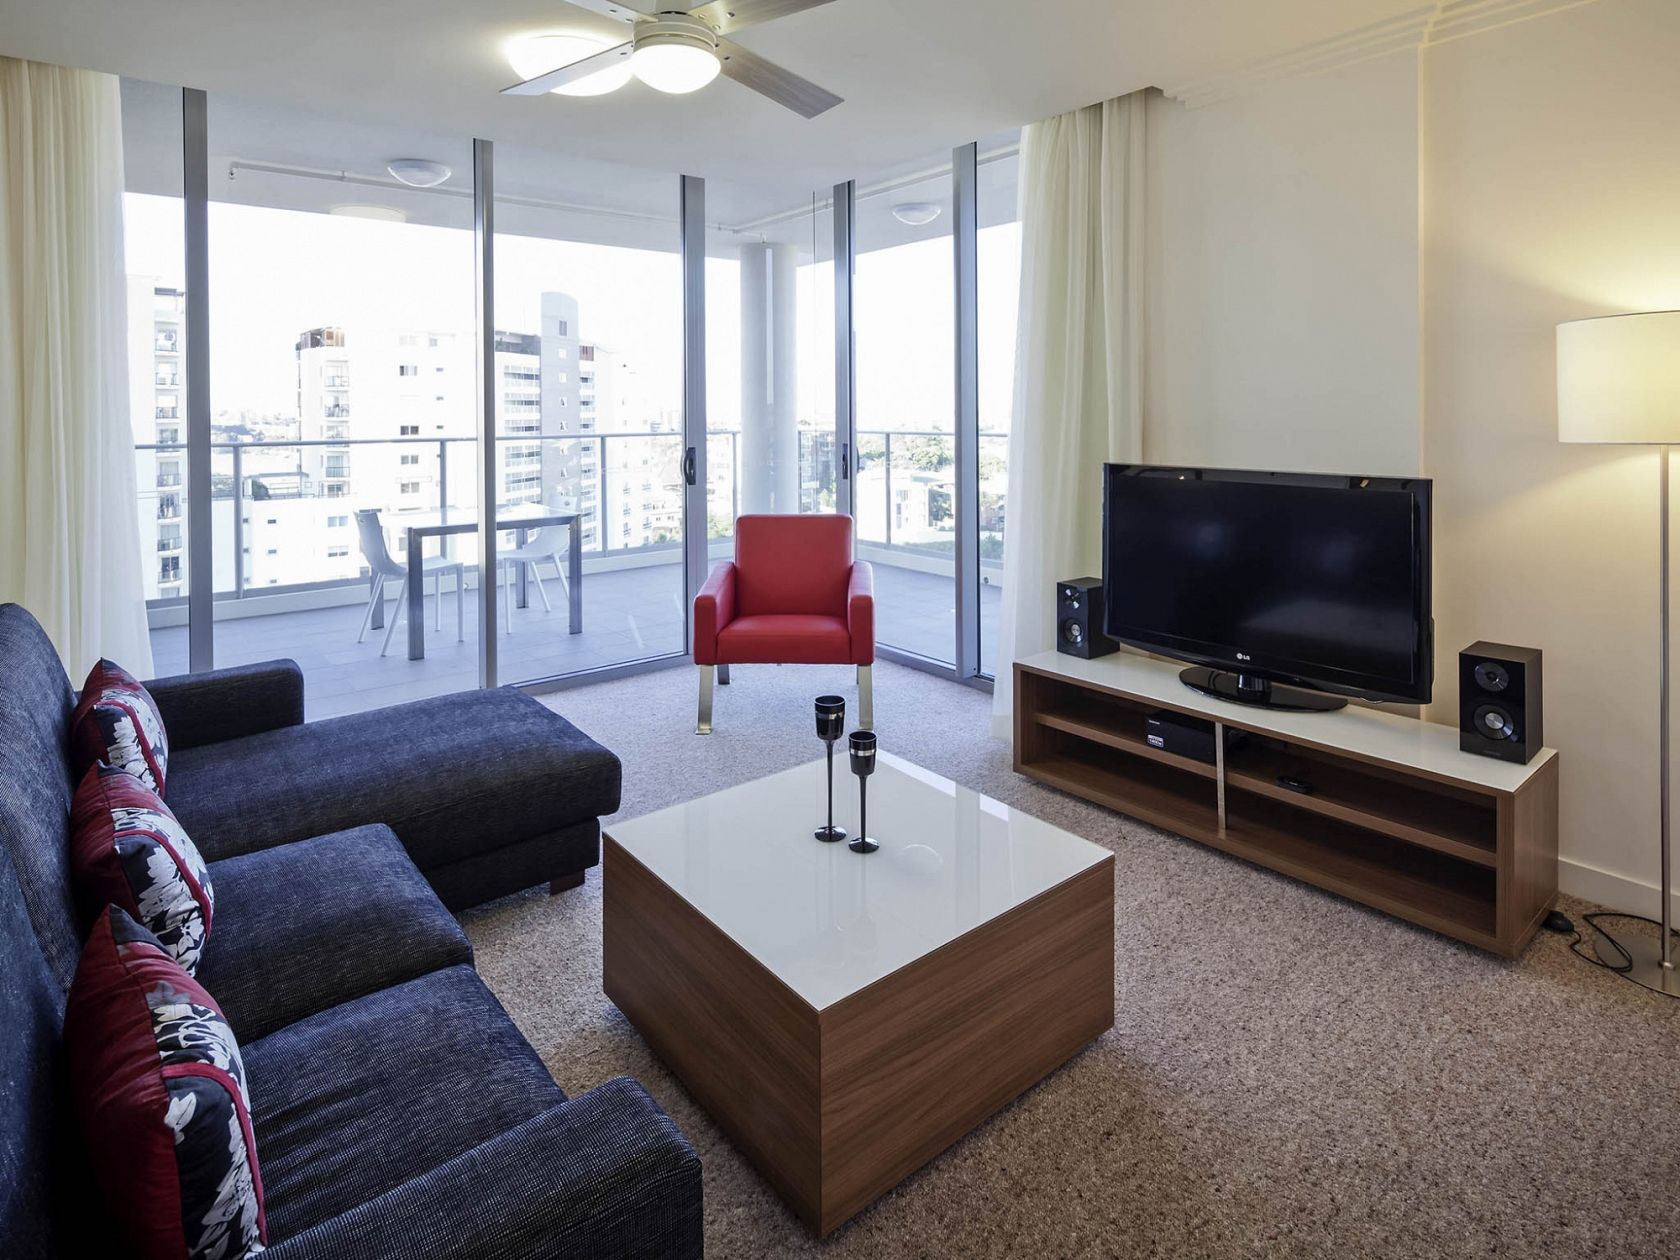 Newly Branded Quest Apartment Hotel in Brisbane's Most Popular Suburb - Sth Bris